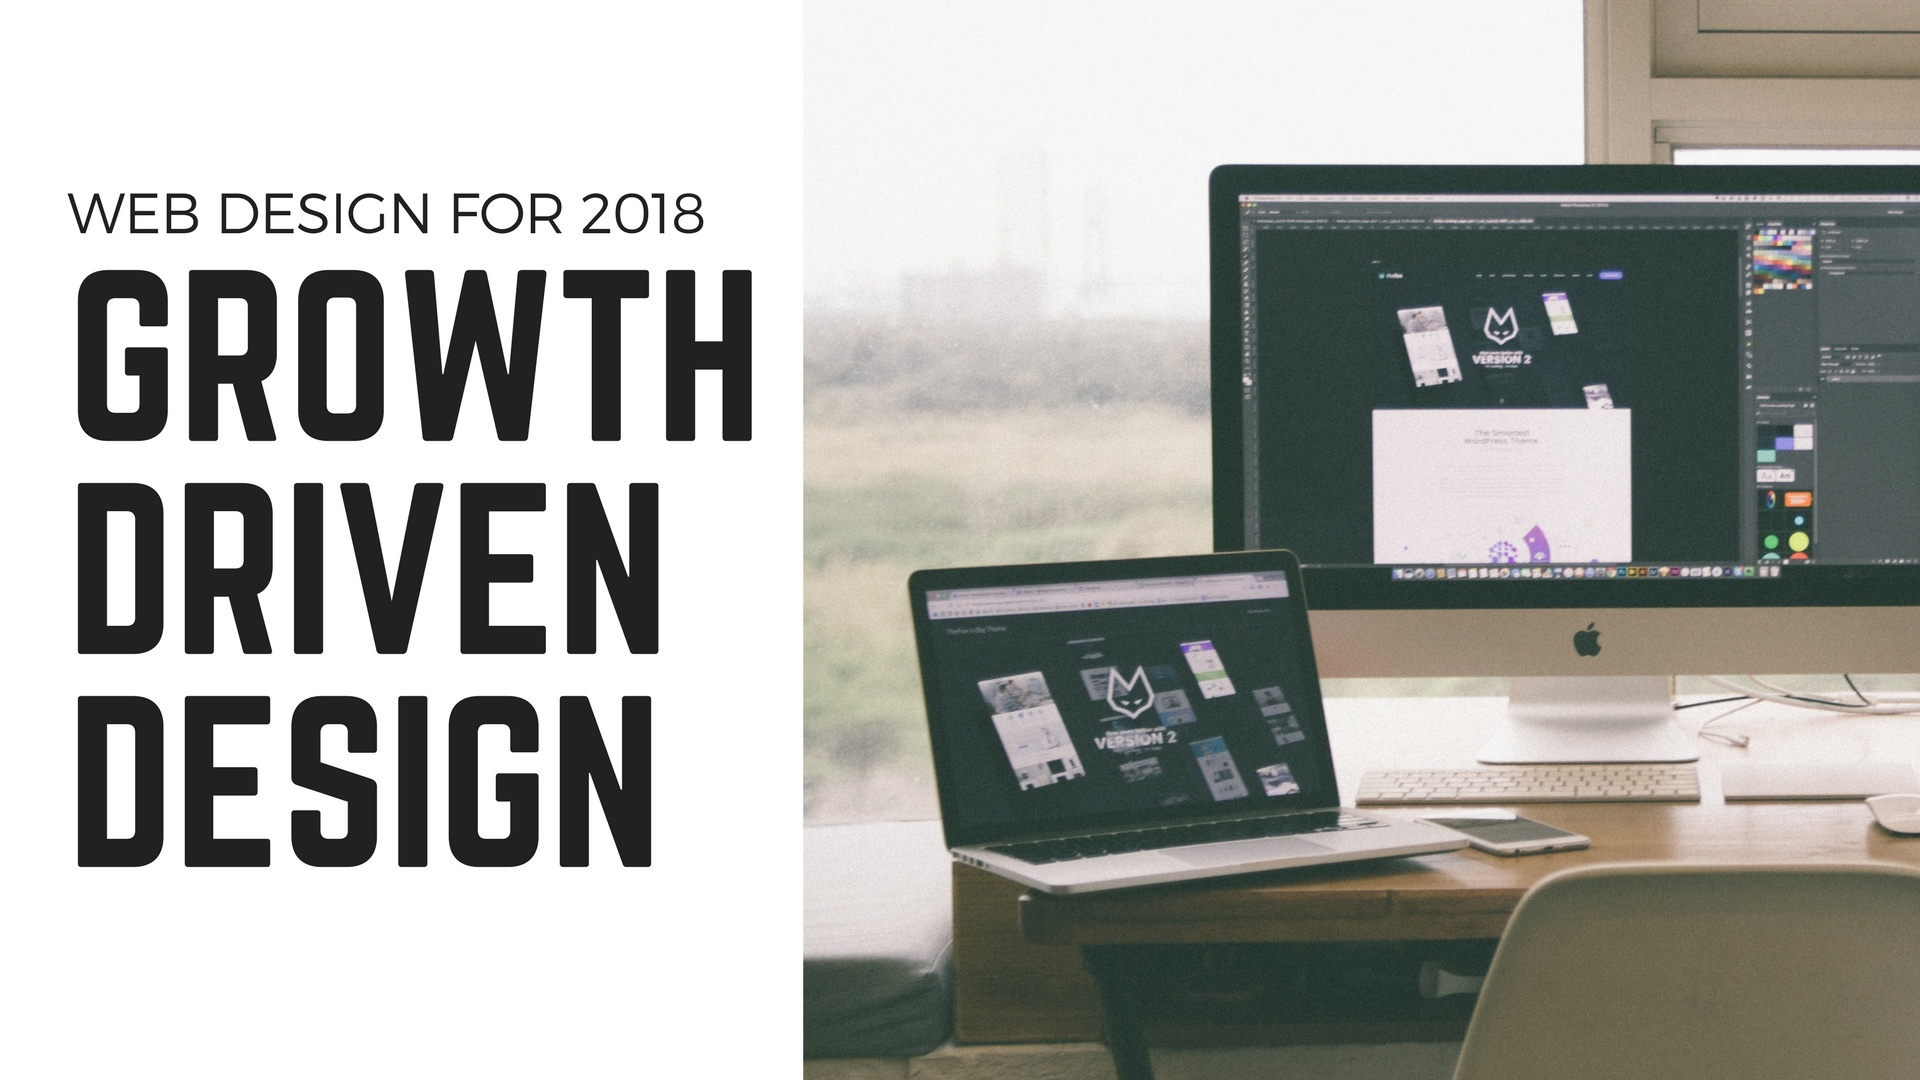 Web Design for 2018: Growth Driven Design